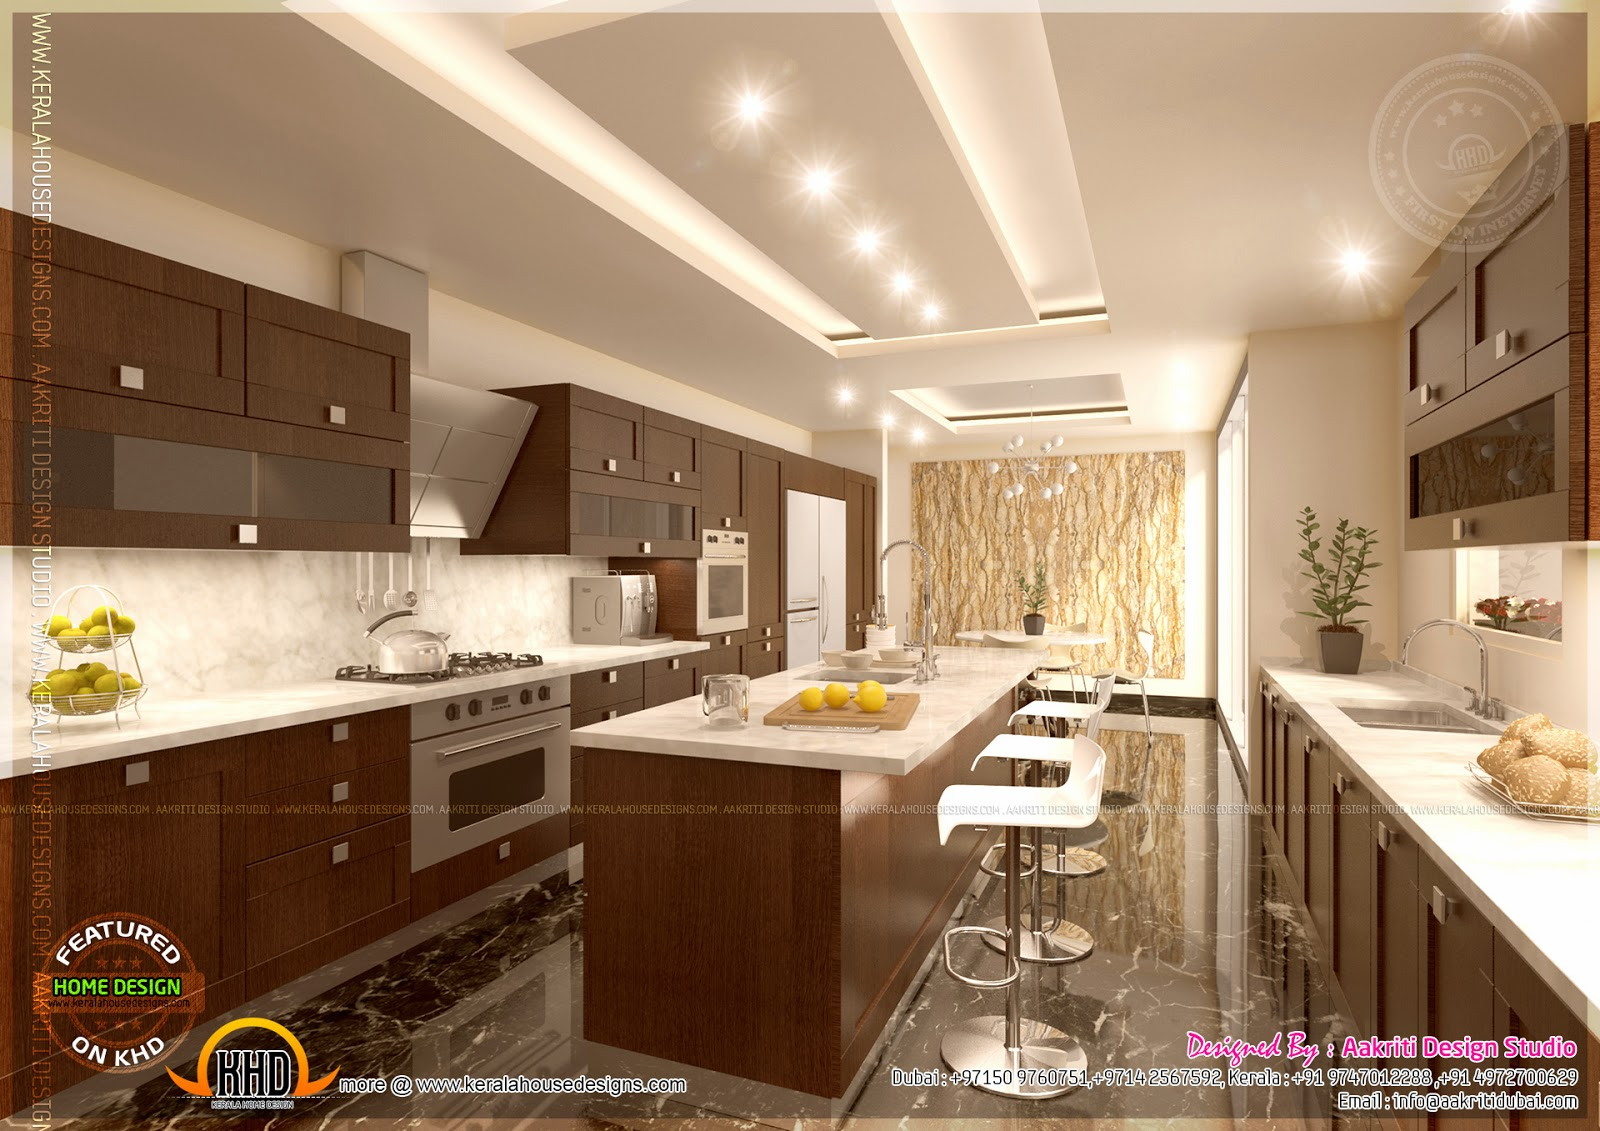 Kitchen designs by aakriti design studio kerala home design and floor plans - Pics of kitchen designs ...